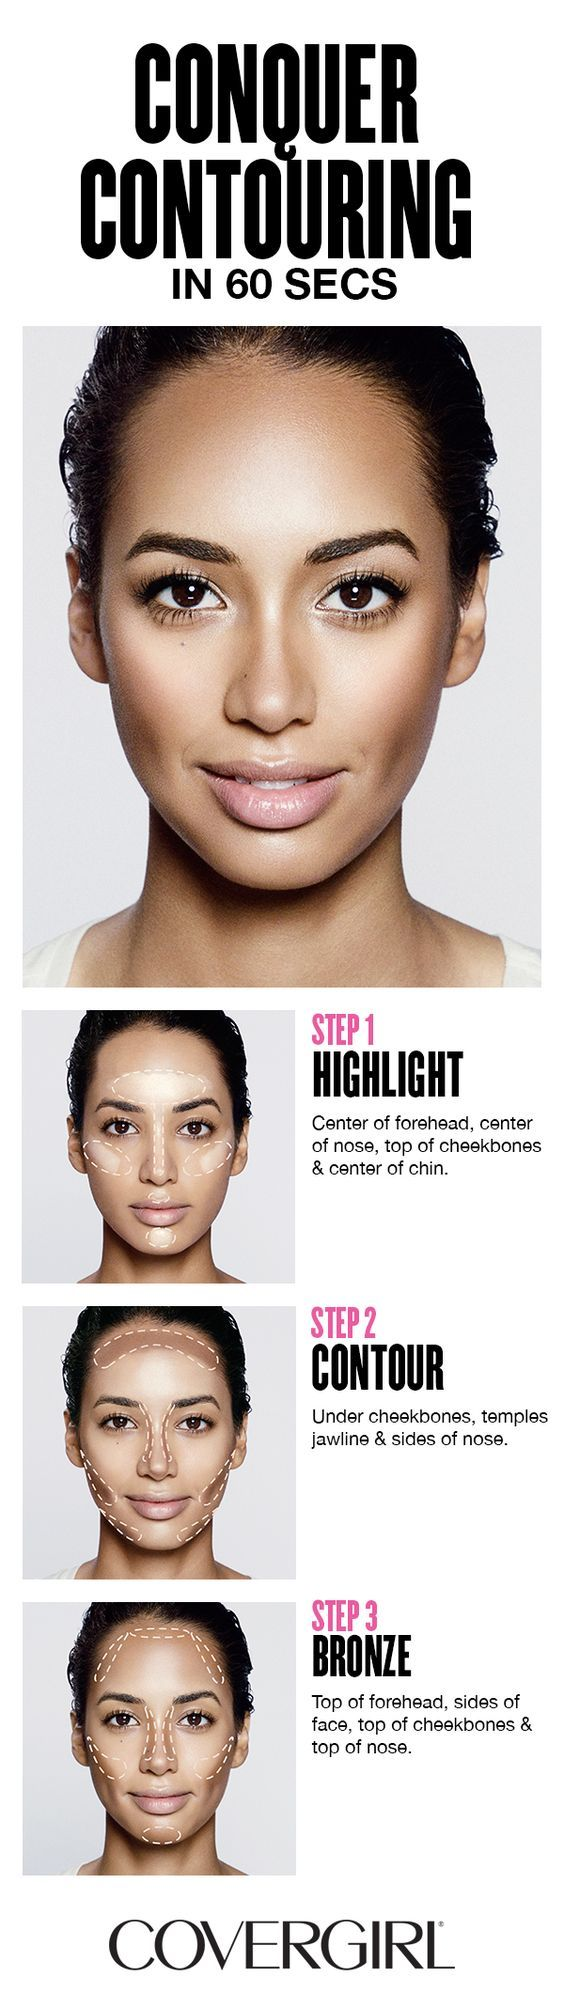 7 Highlighting Guidelines for the Perfect Glow